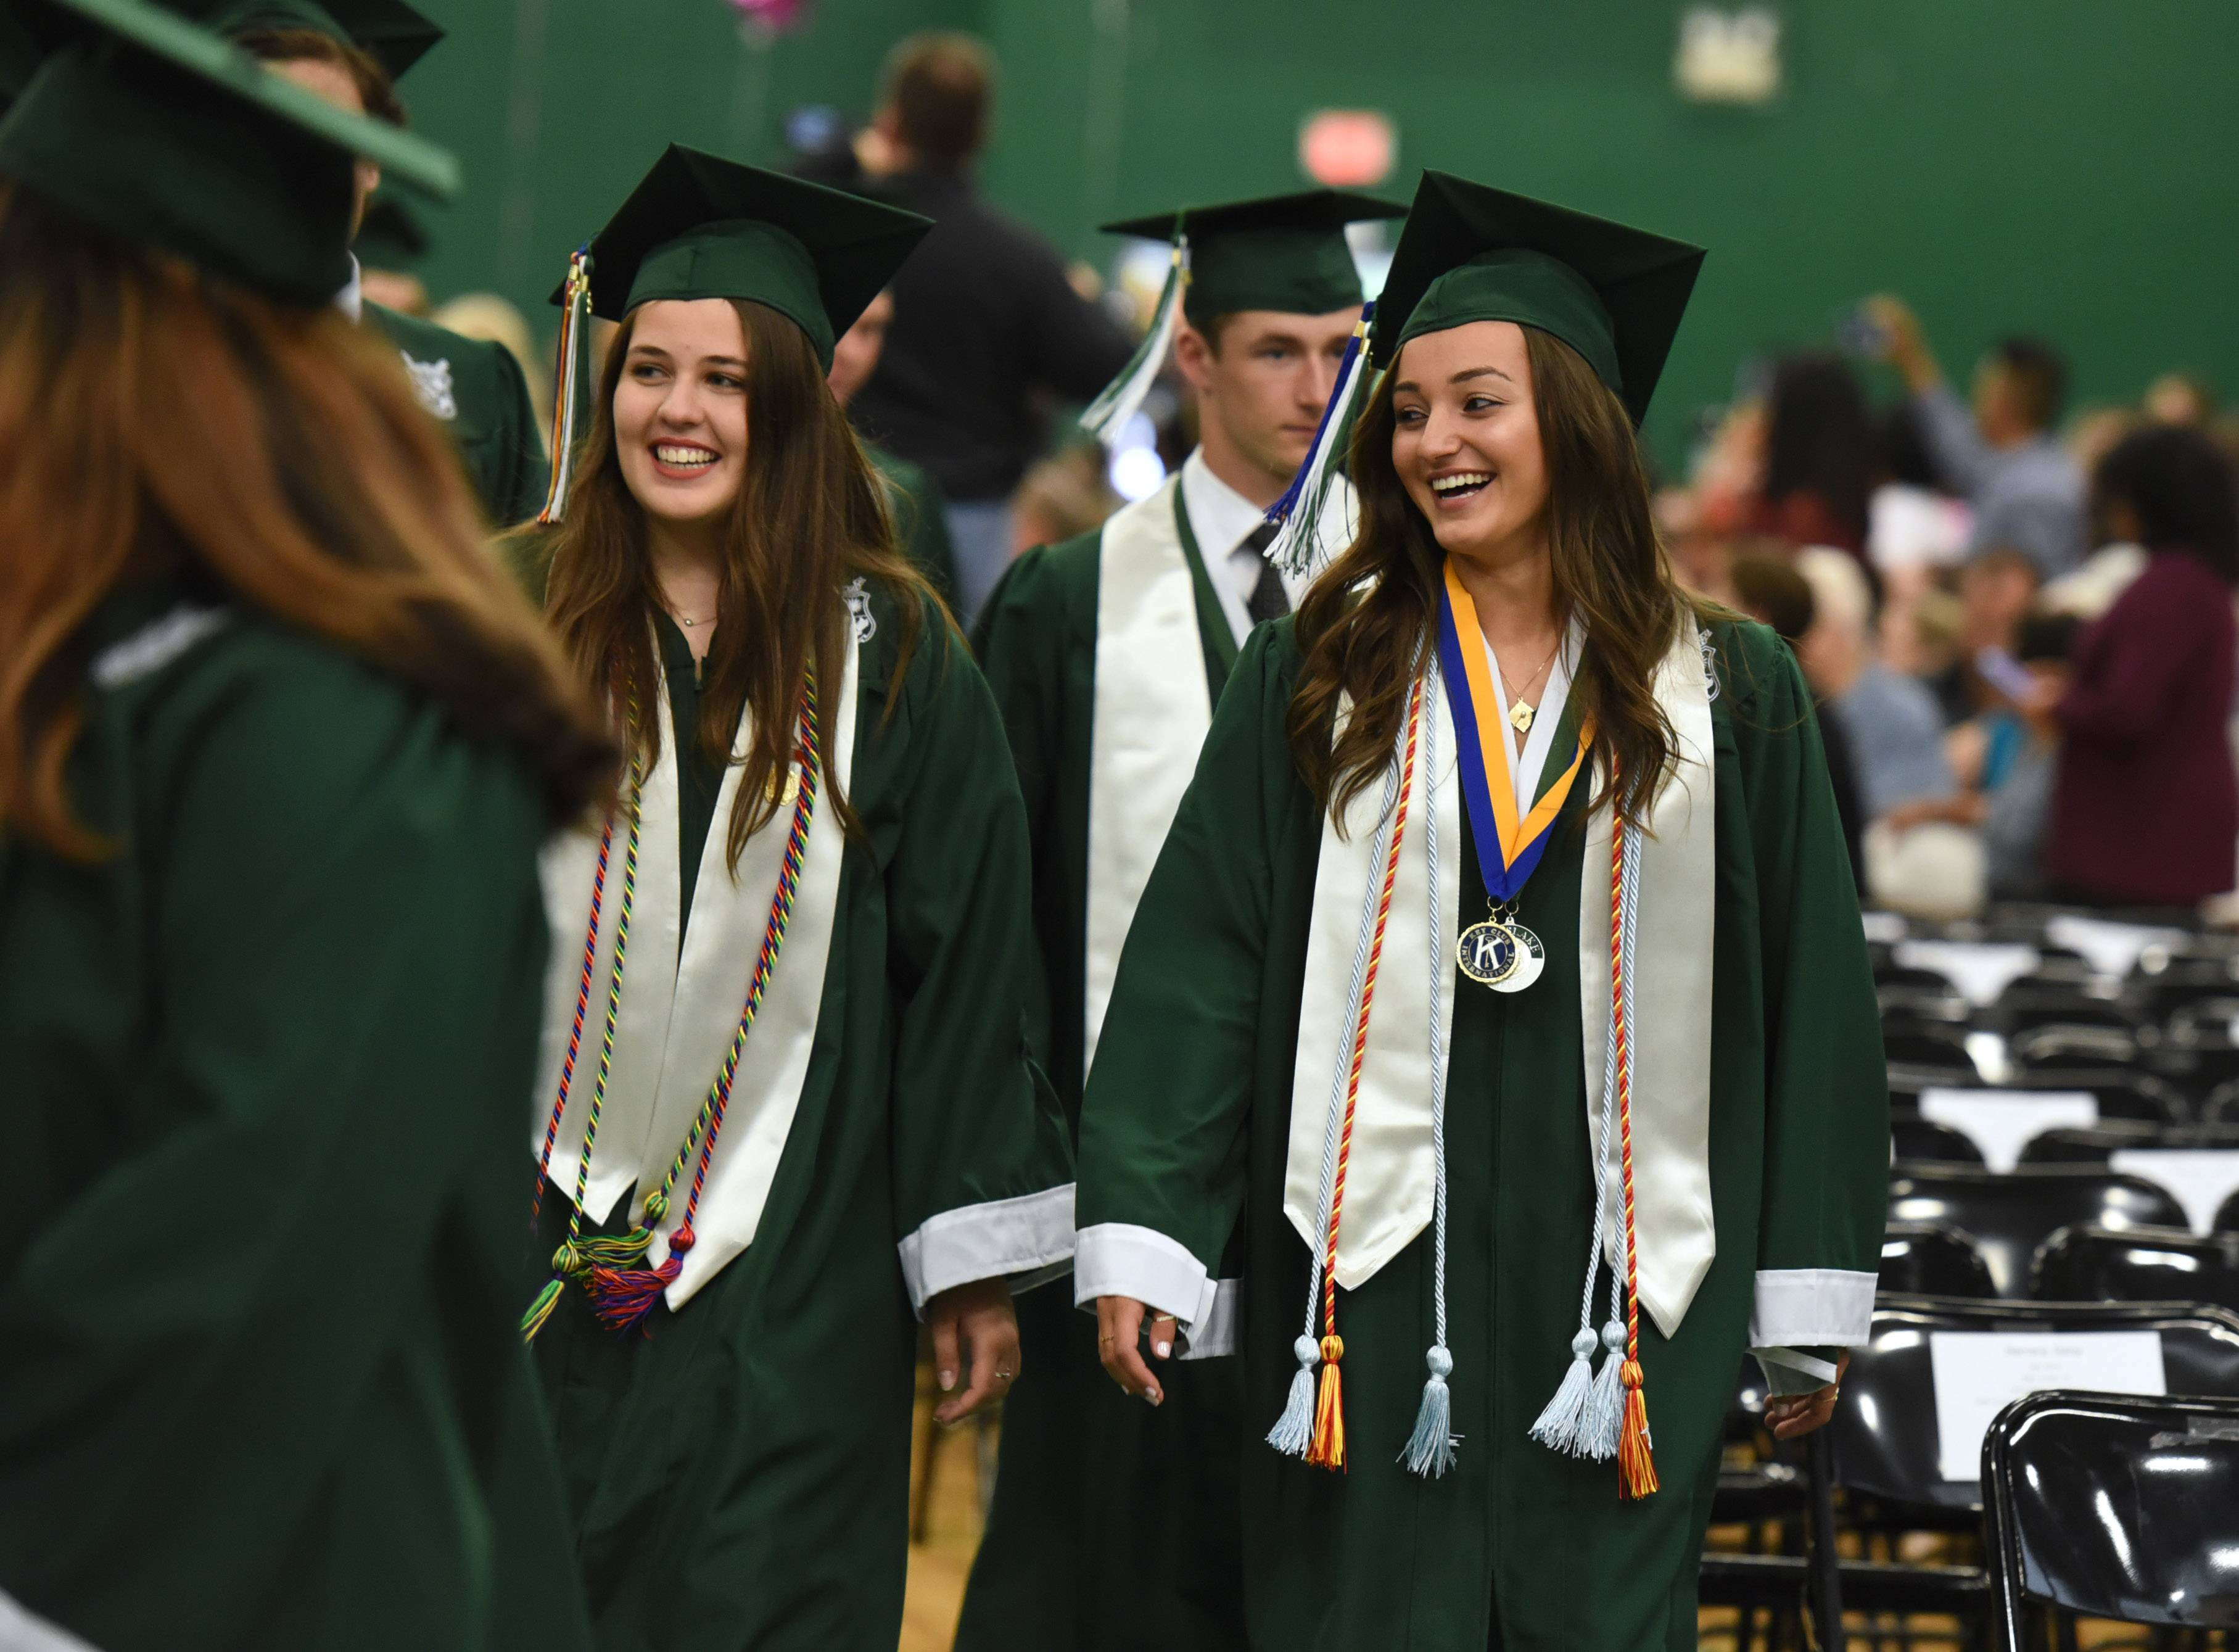 Grayslake Central High School graduates enjoy Sunday's commencement ceremony at the school in Grayslake.